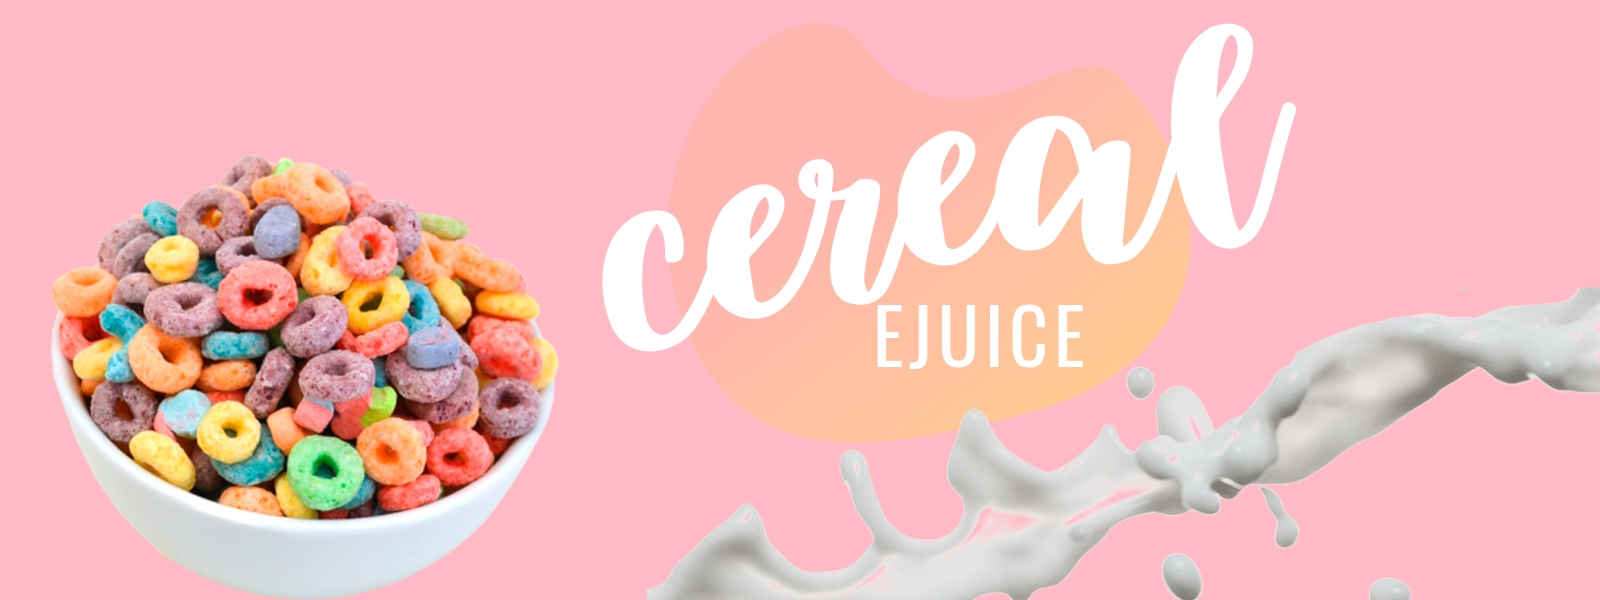 Cereal Ejuice